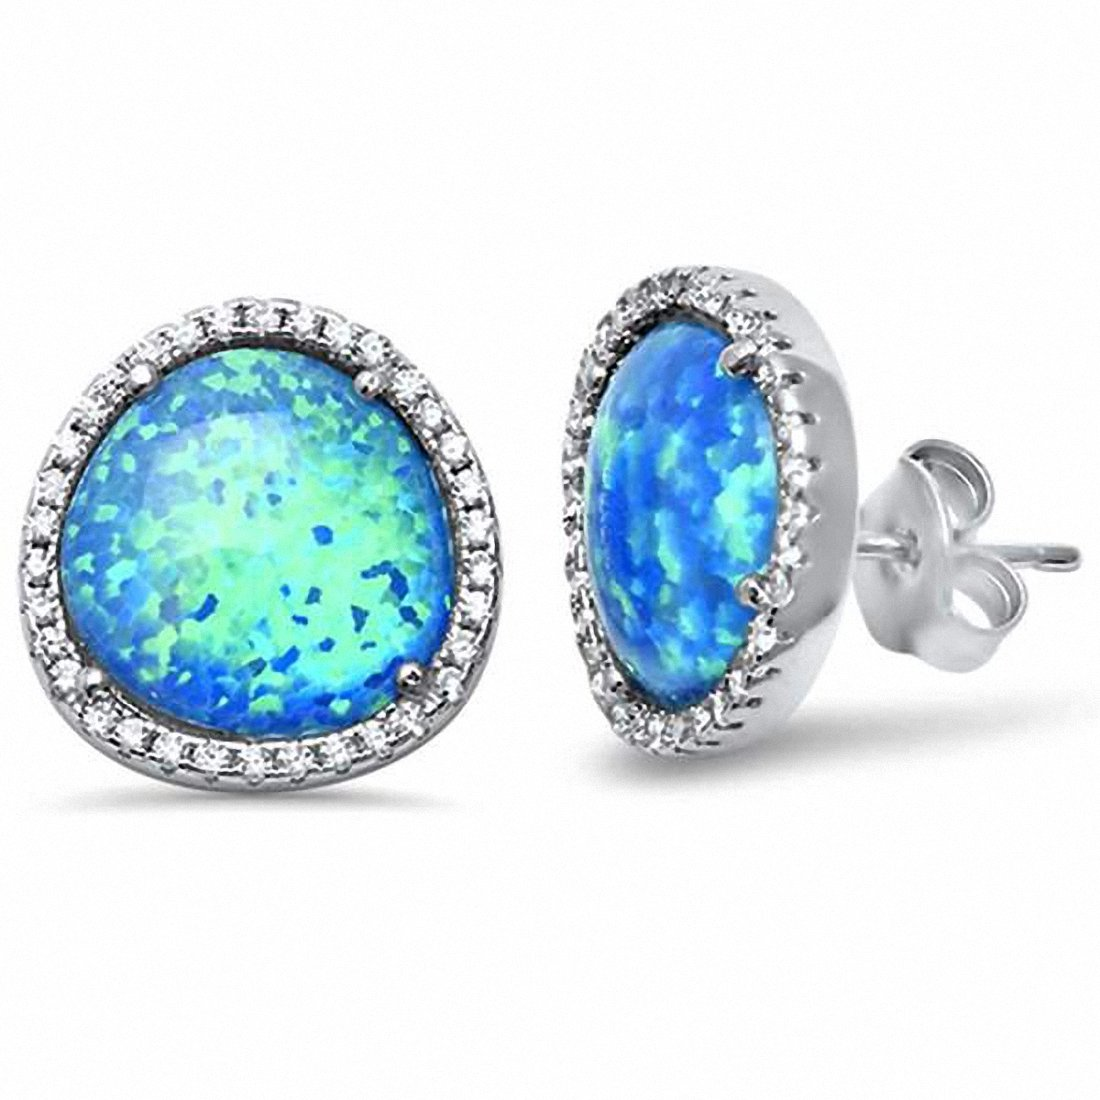 Halo Design Stud Earrings Round Created Opal Cubic Zirconia 925 Sterling Silver Choose Color